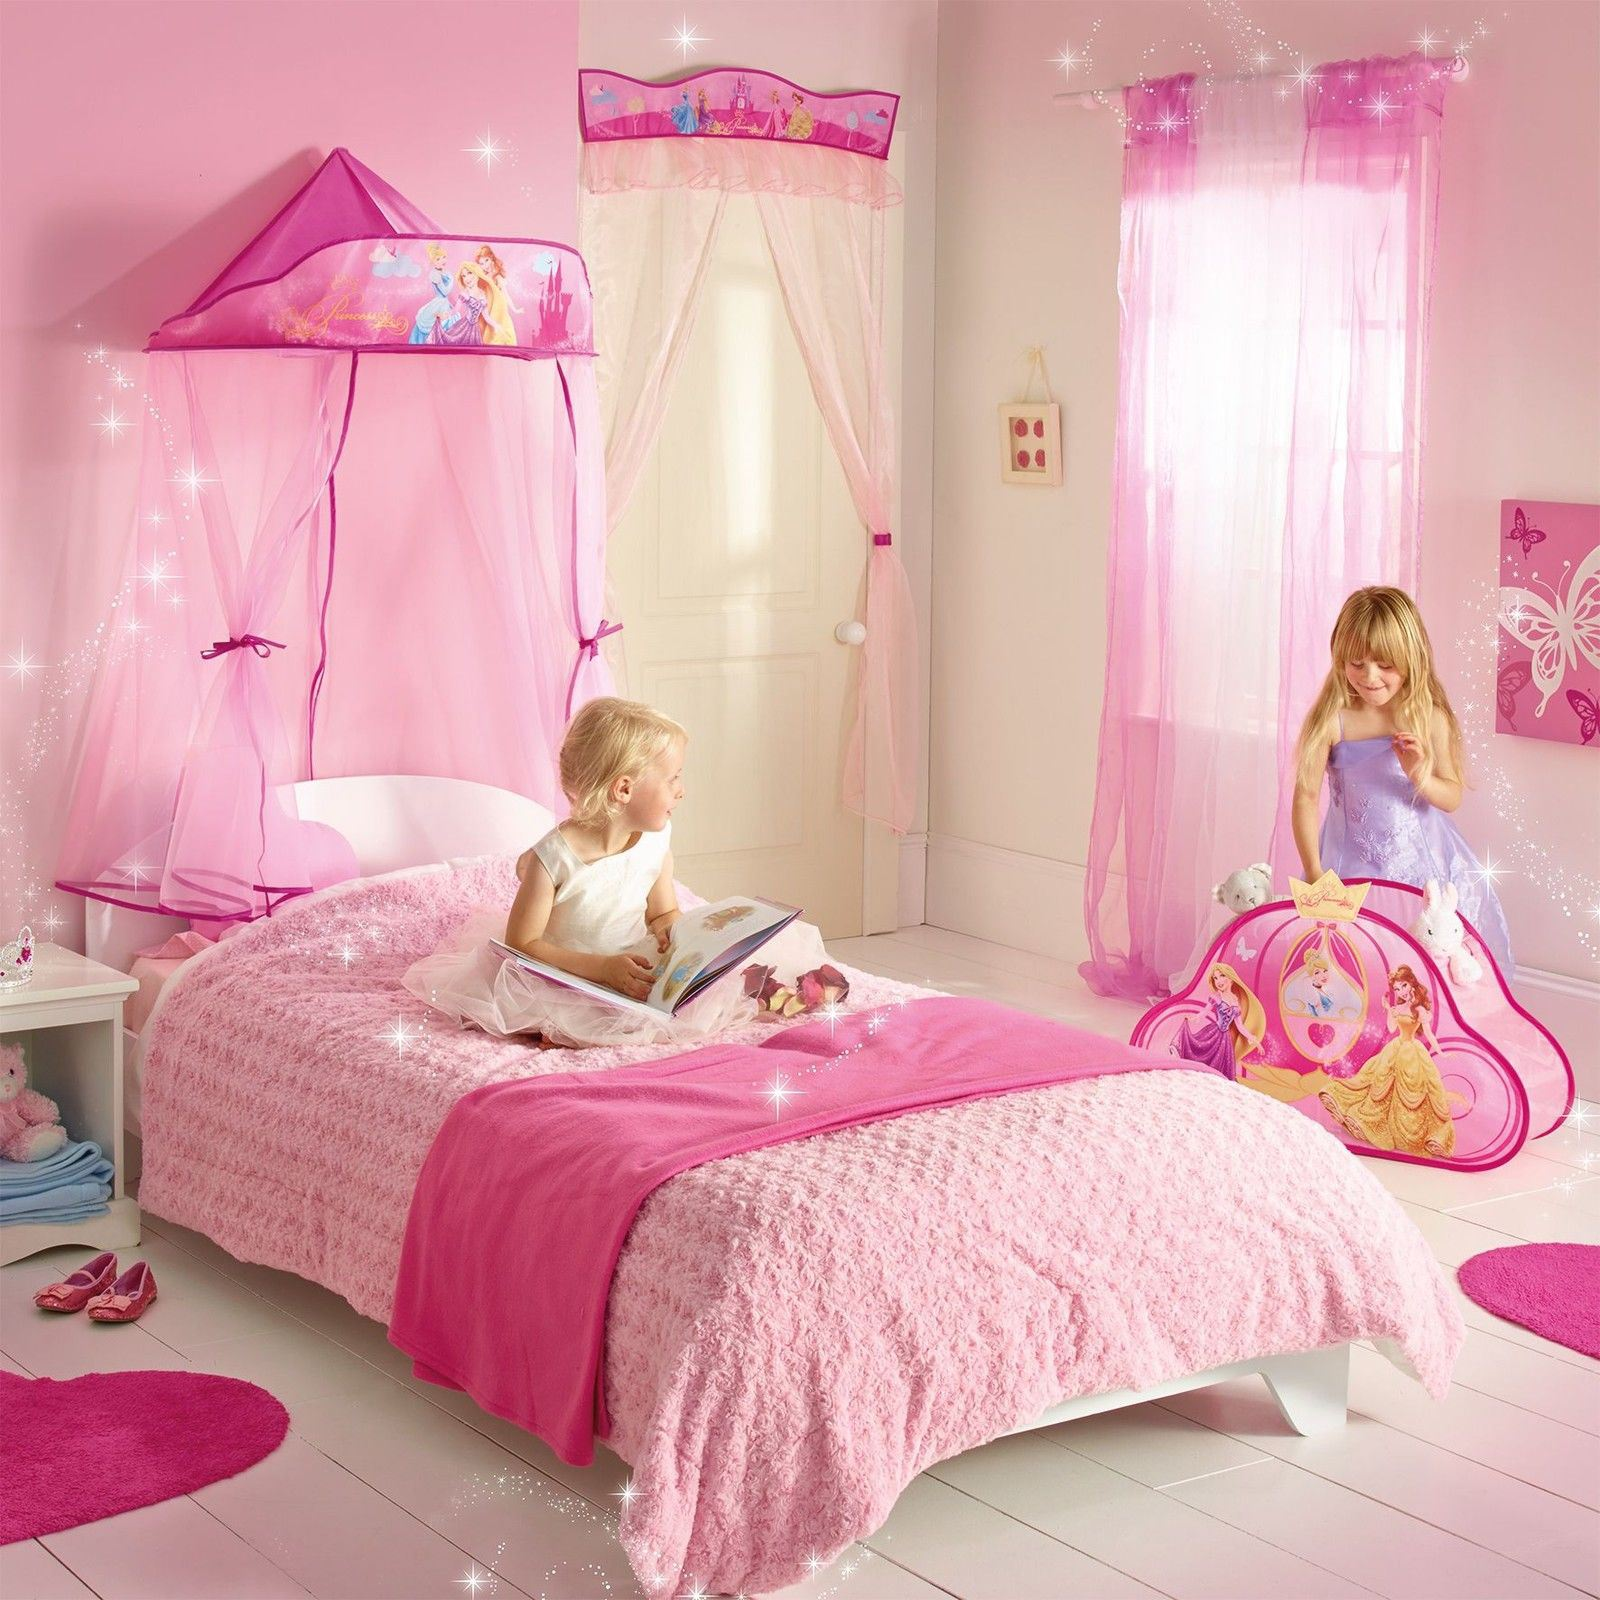 disney princess hanging bed canopy new girls bedroom decor. Black Bedroom Furniture Sets. Home Design Ideas